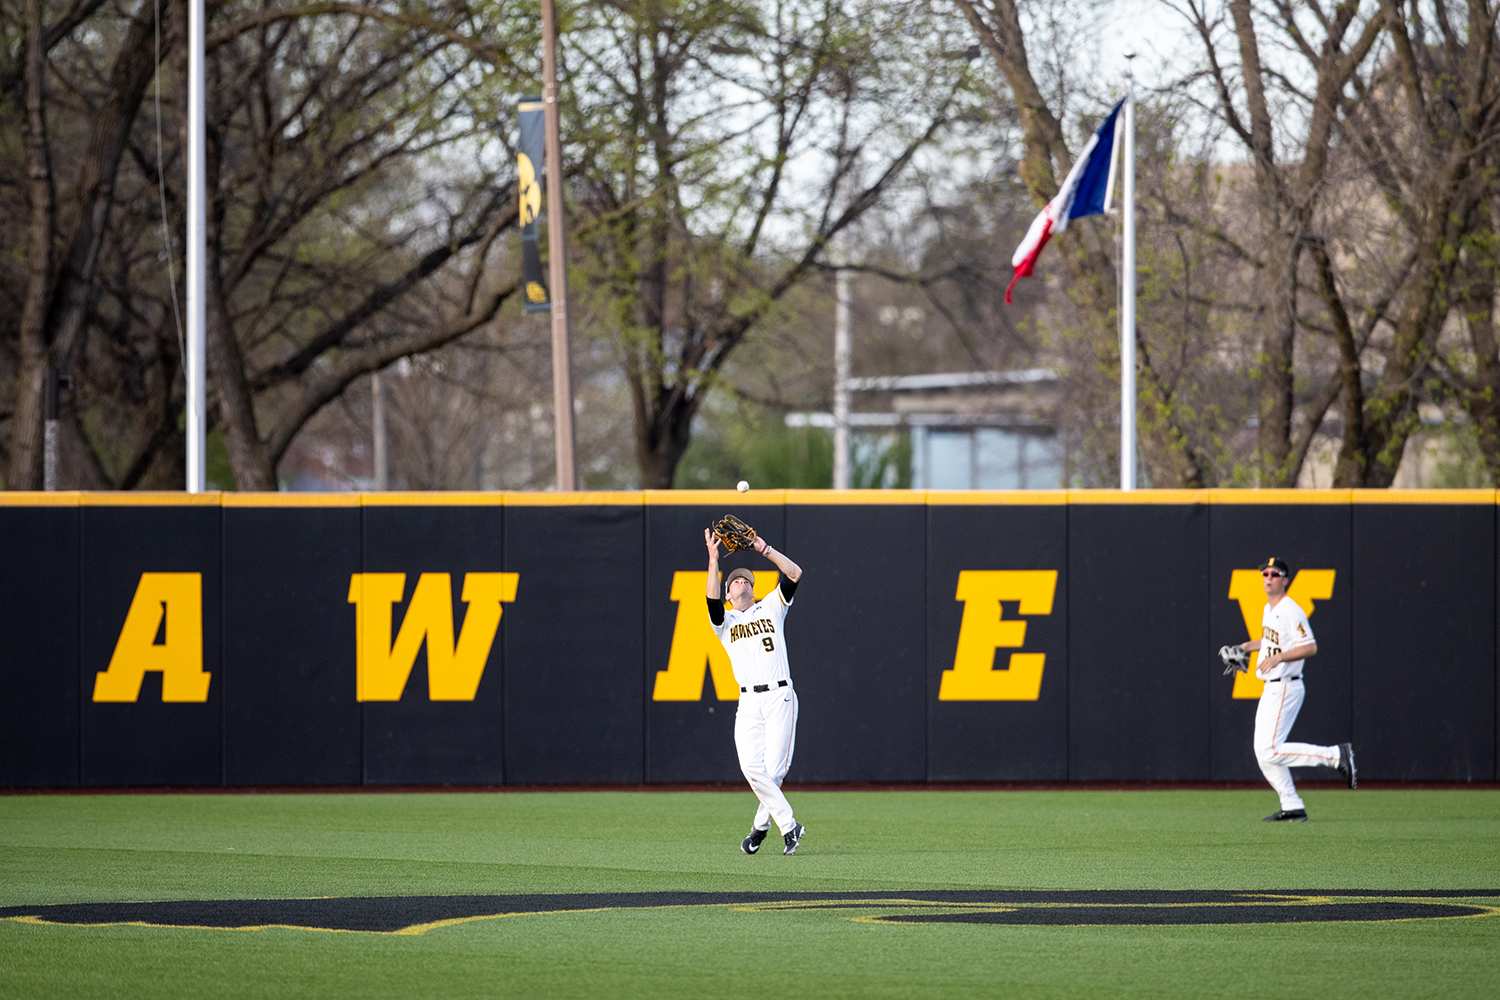 Iowa+outfielder+Ben+Norman+catches+a+line+drive+during+the+baseball+game+against+Milwaukee+at+Duane+Banks+Field+on+Tuesday%2C+April+23%2C+2019.+The+Hawkeyes+defeated+the+Panthers+5-4.